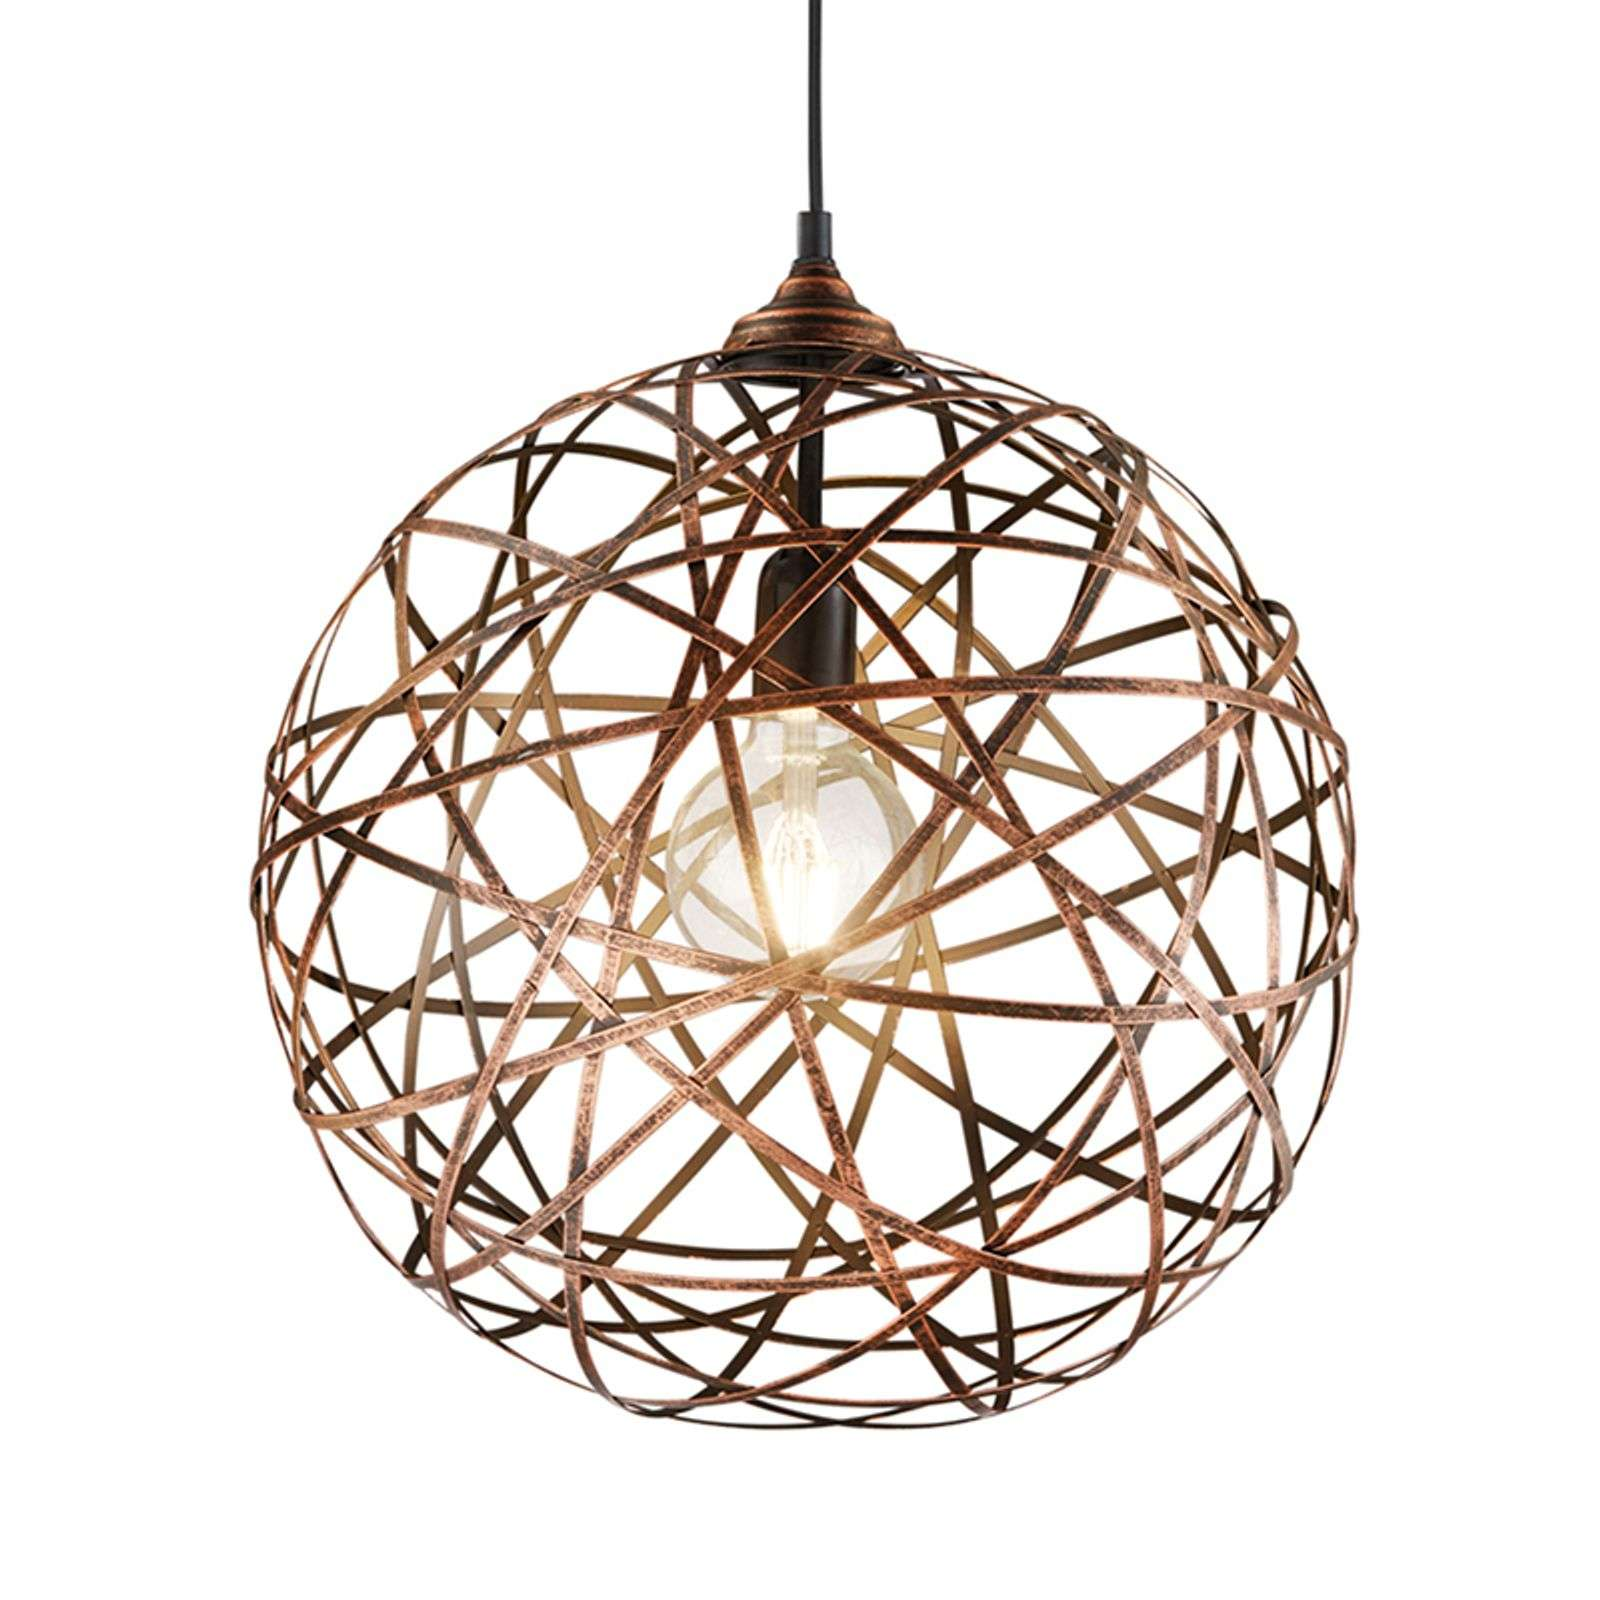 Suspension Jacob, couleur cuivre antique